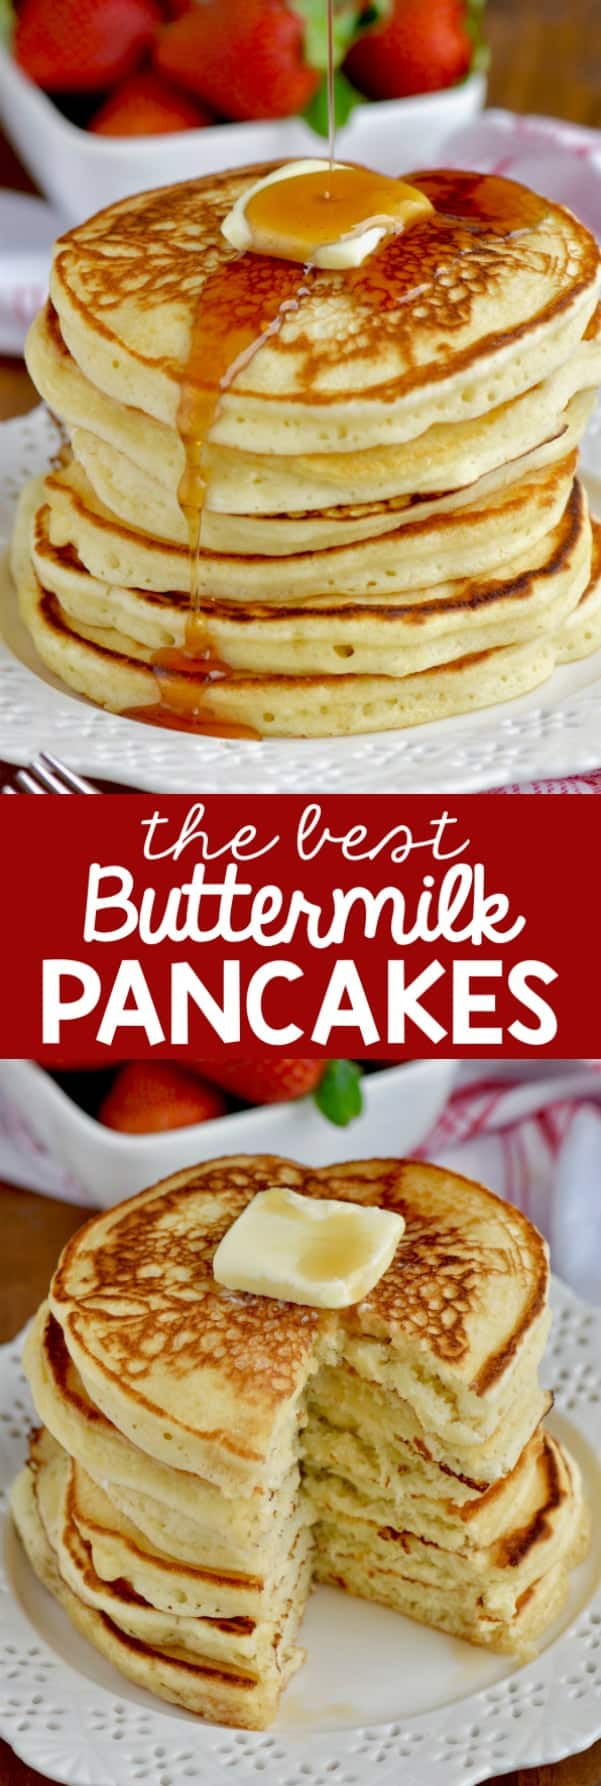 These are the BEST Buttermilk Pancakes. This is such a fluffy buttermilk pancake recipe and with the perfect flavor.